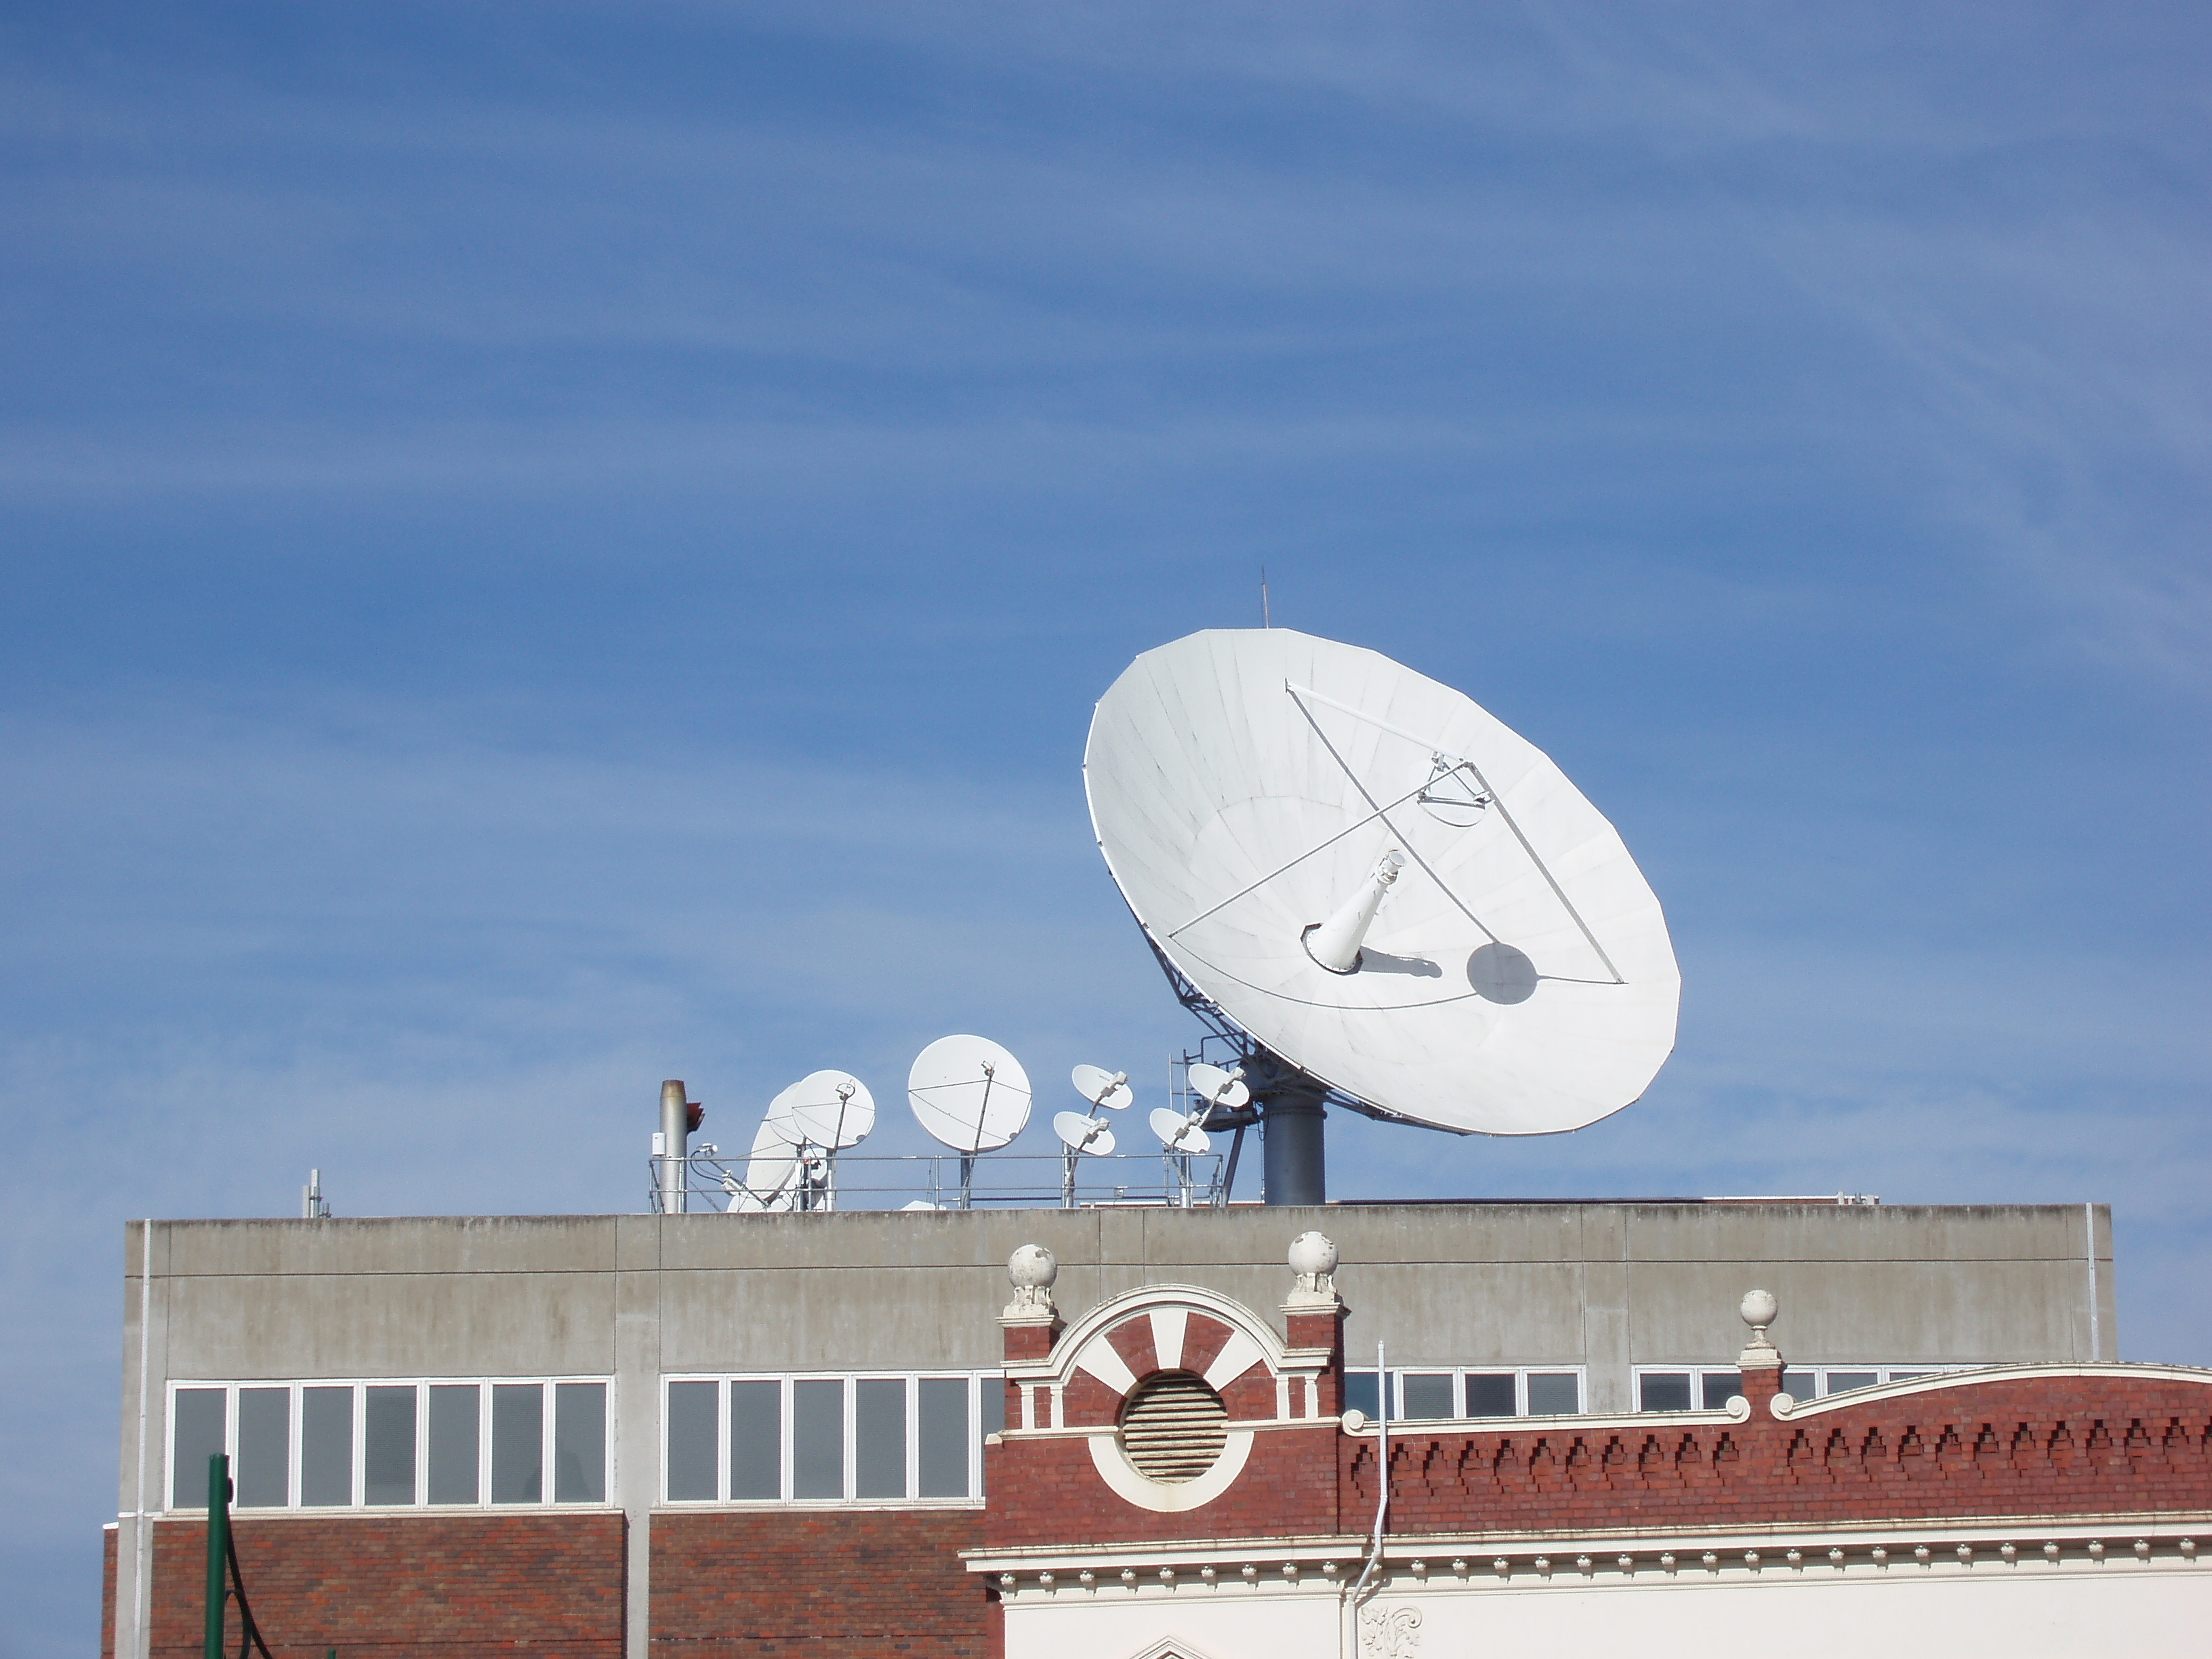 a large satellite dish mounted on a roof top with several other smaller dishes